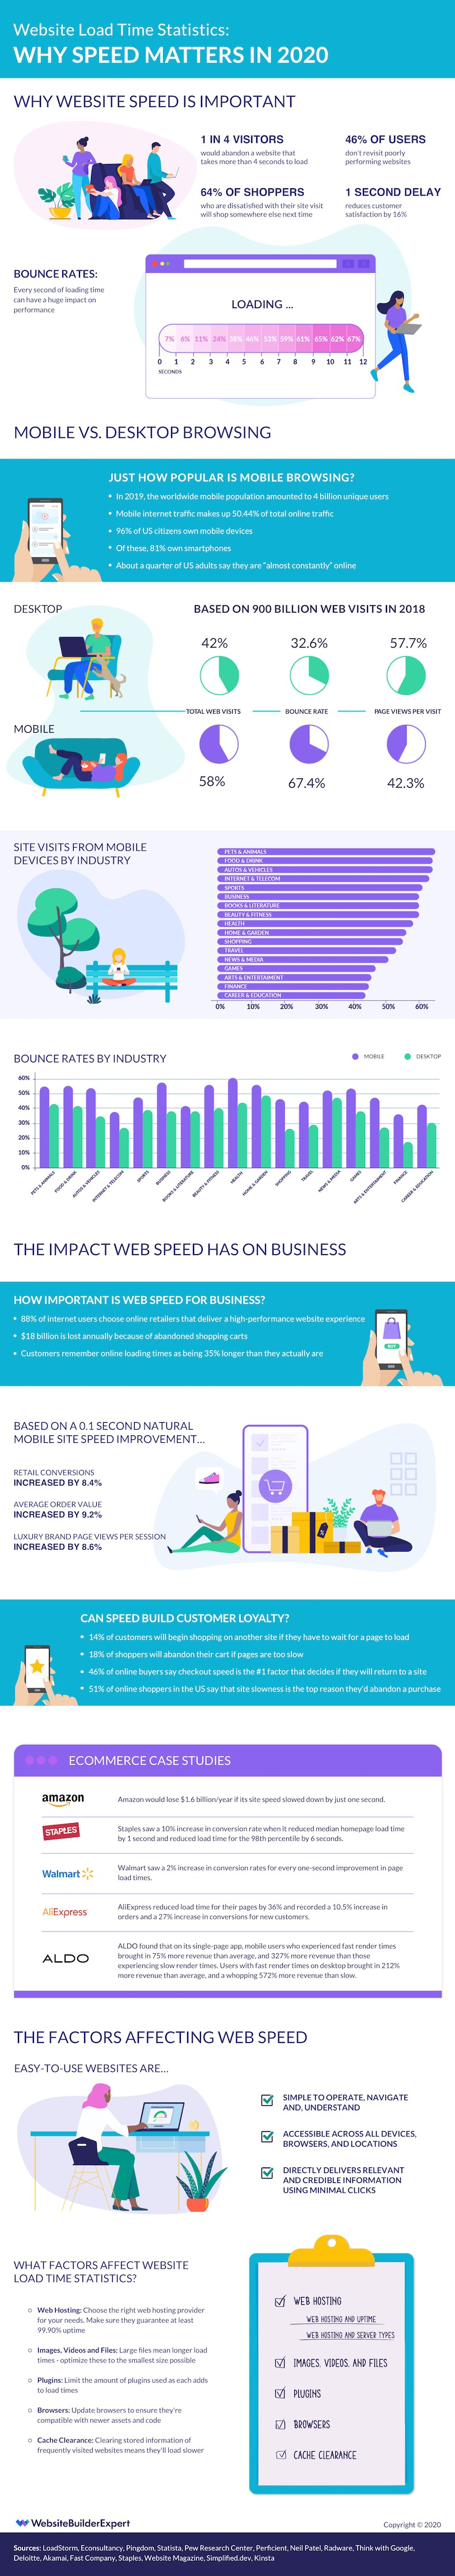 Infographic Why Website Load Time Matters in 2020